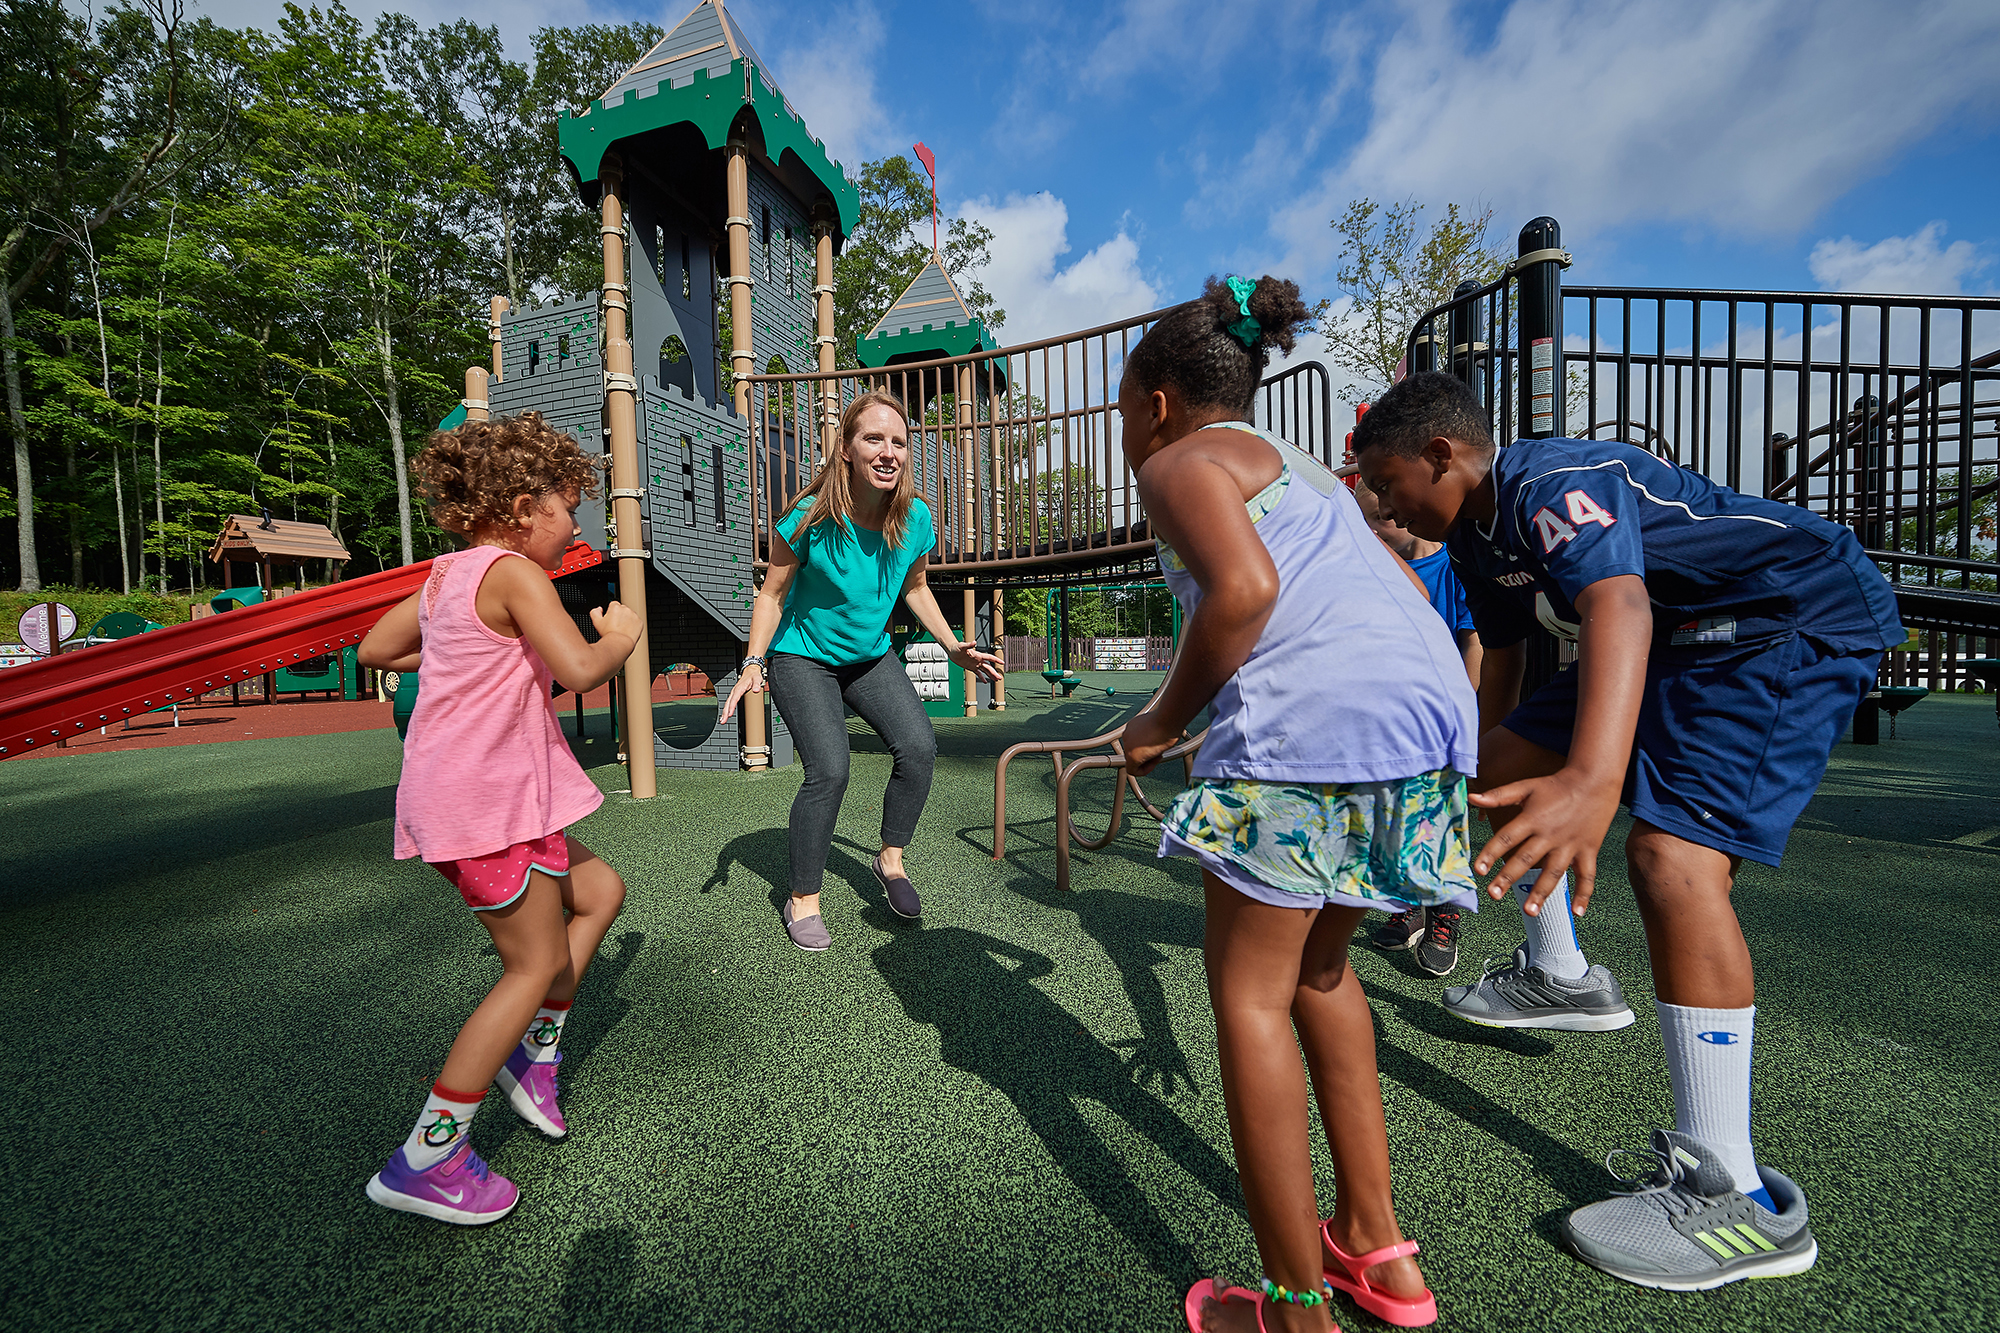 Lindsay Distefano, associate professor of kinesiology,shows children how to exercise on a playground at the Mansfield Community Center on Aug. 3, 2018. (Peter Morenus/UConn Photo)